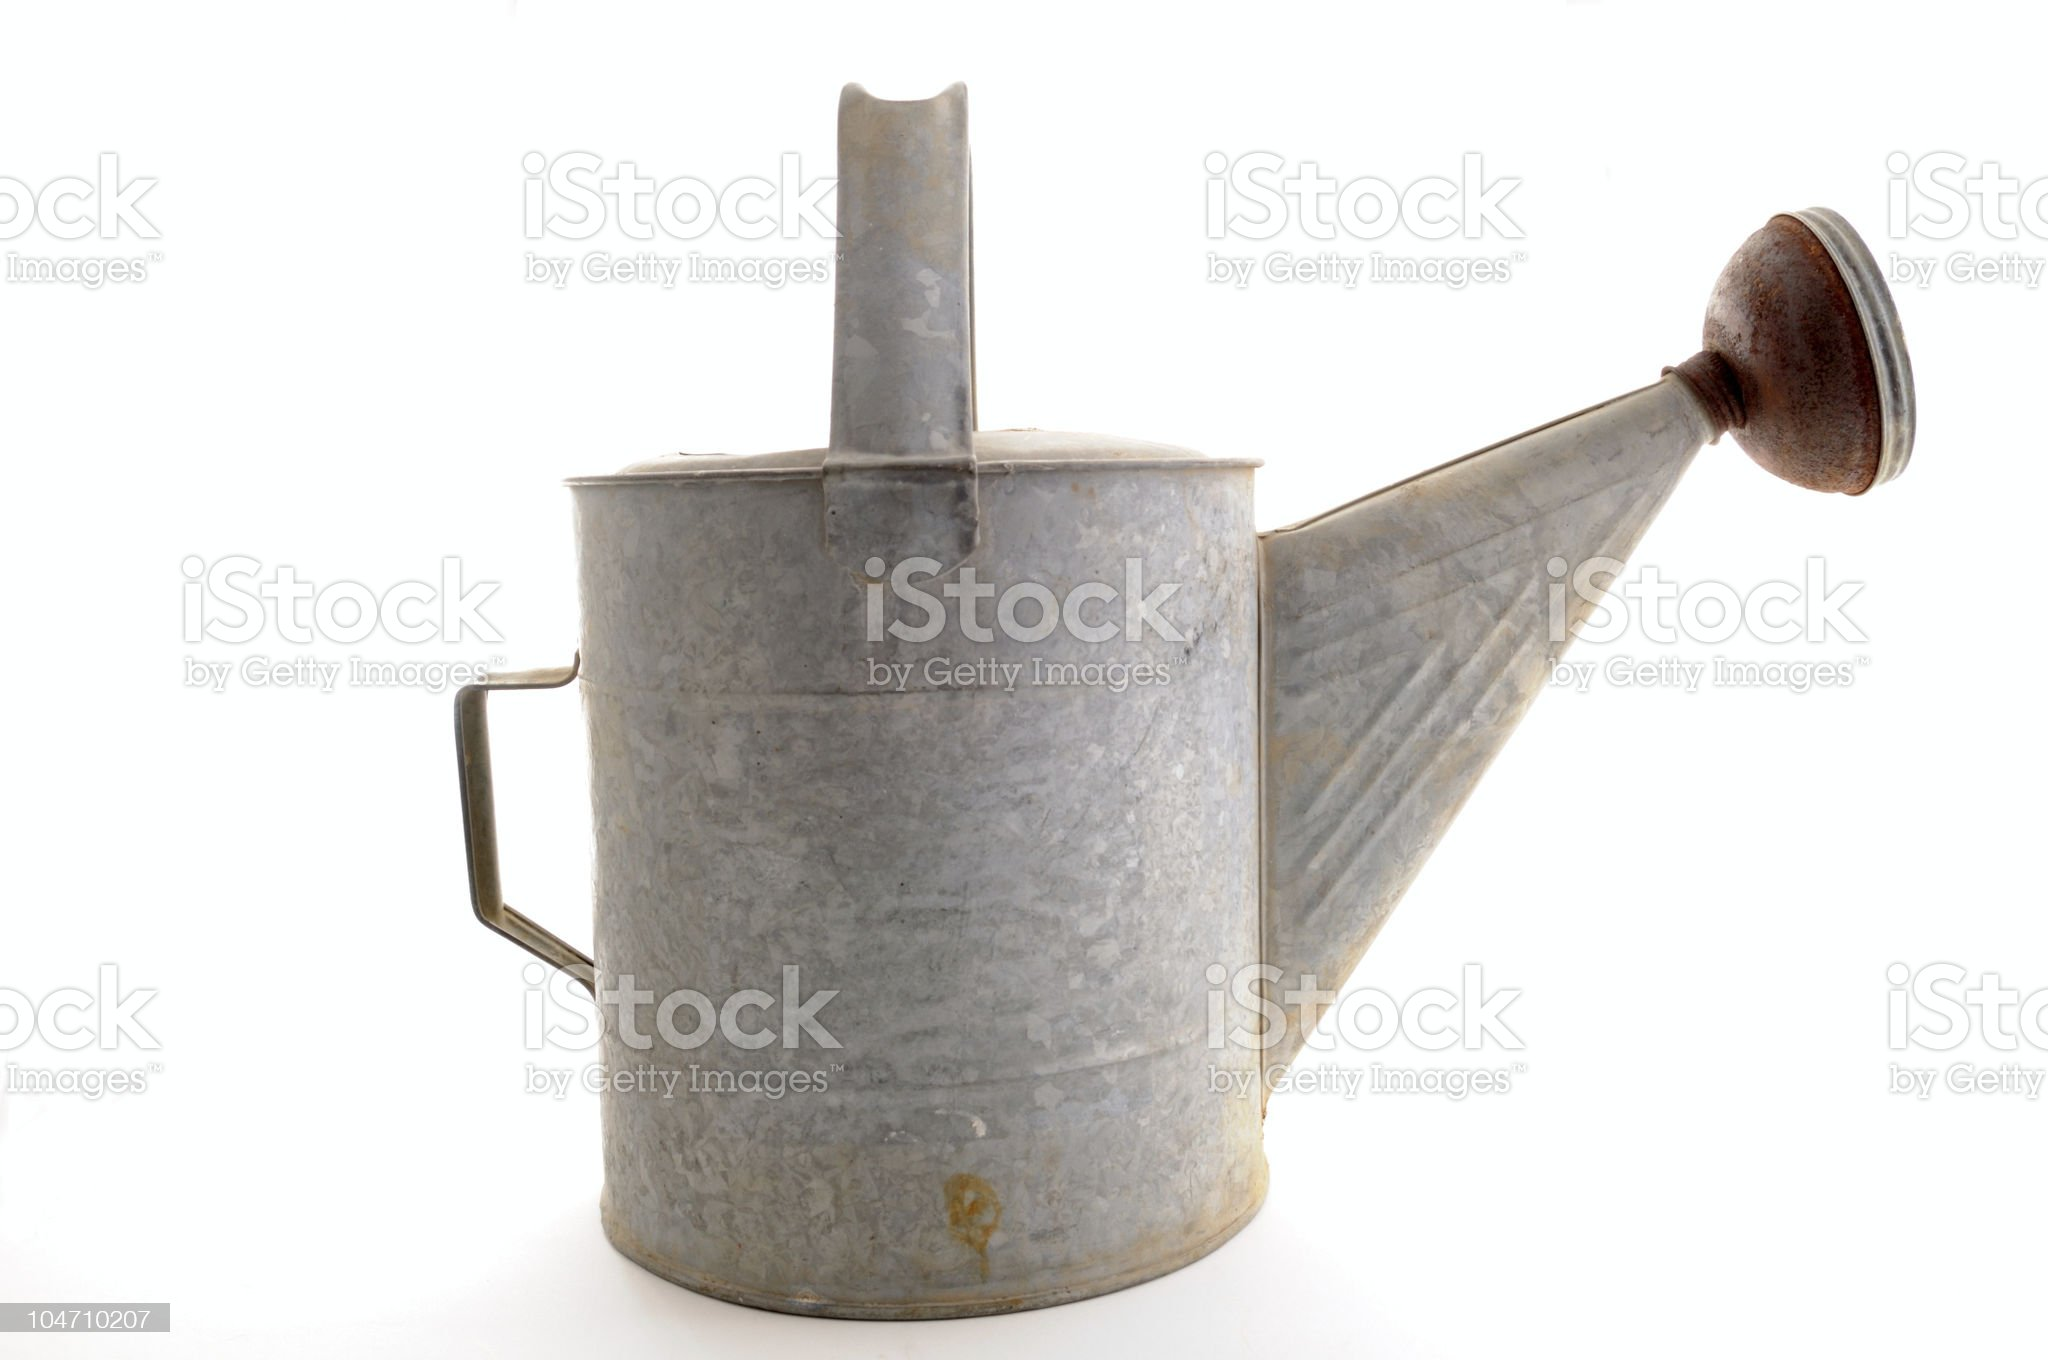 Old Metal Watering Can royalty-free stock photo